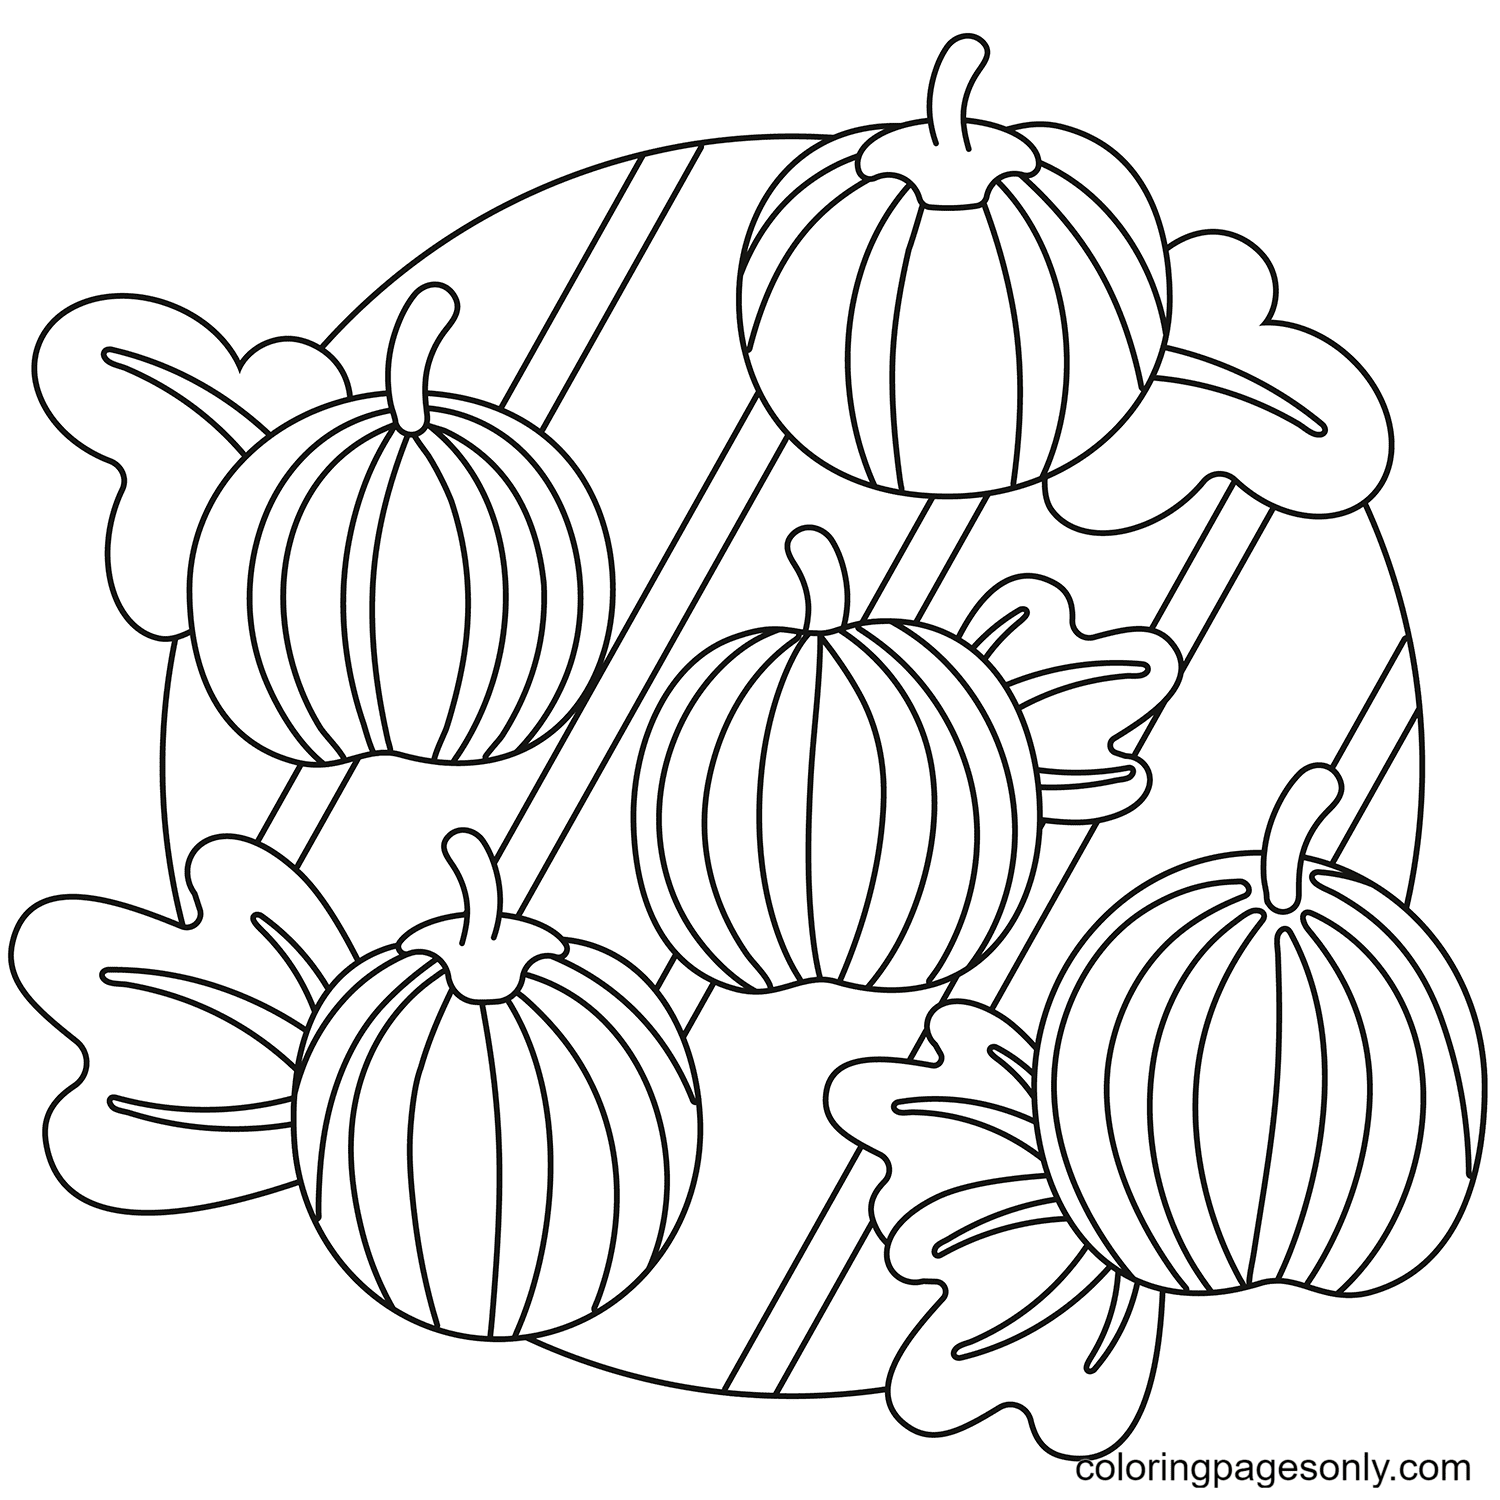 Pumpkin Patch Free Coloring Page